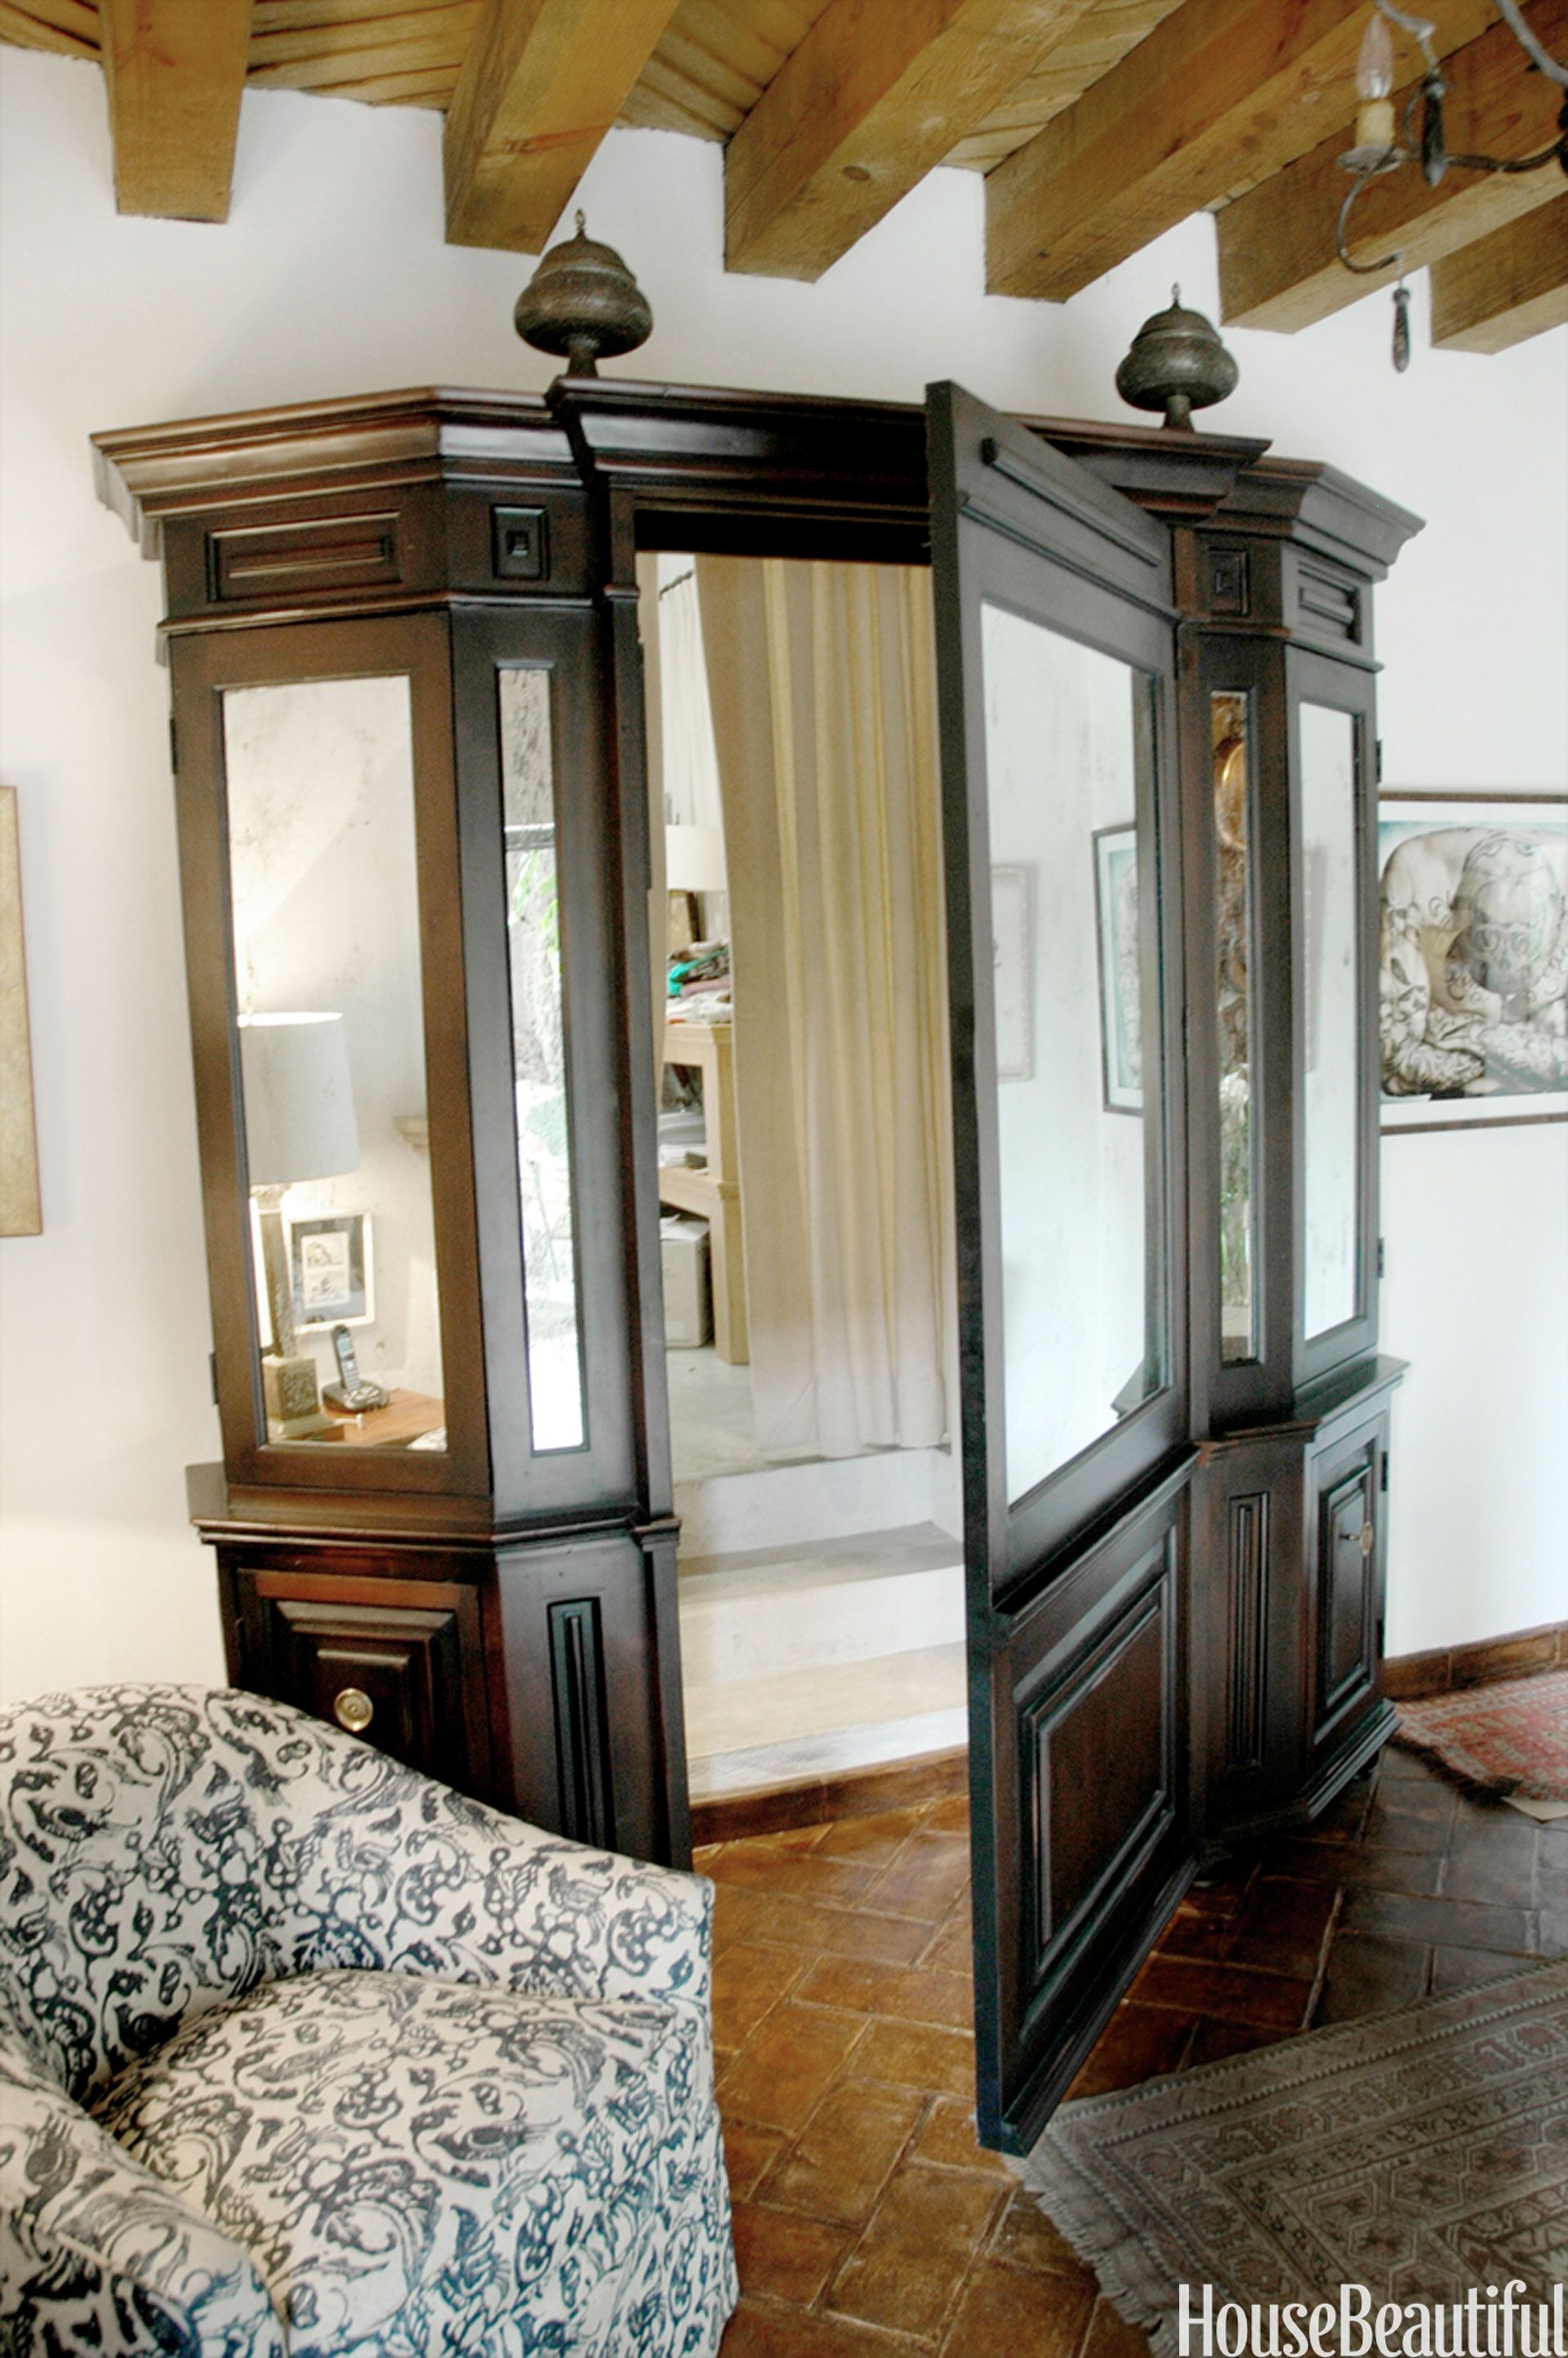 Hidden Door To In The Middle Of What Looks Like Armoire